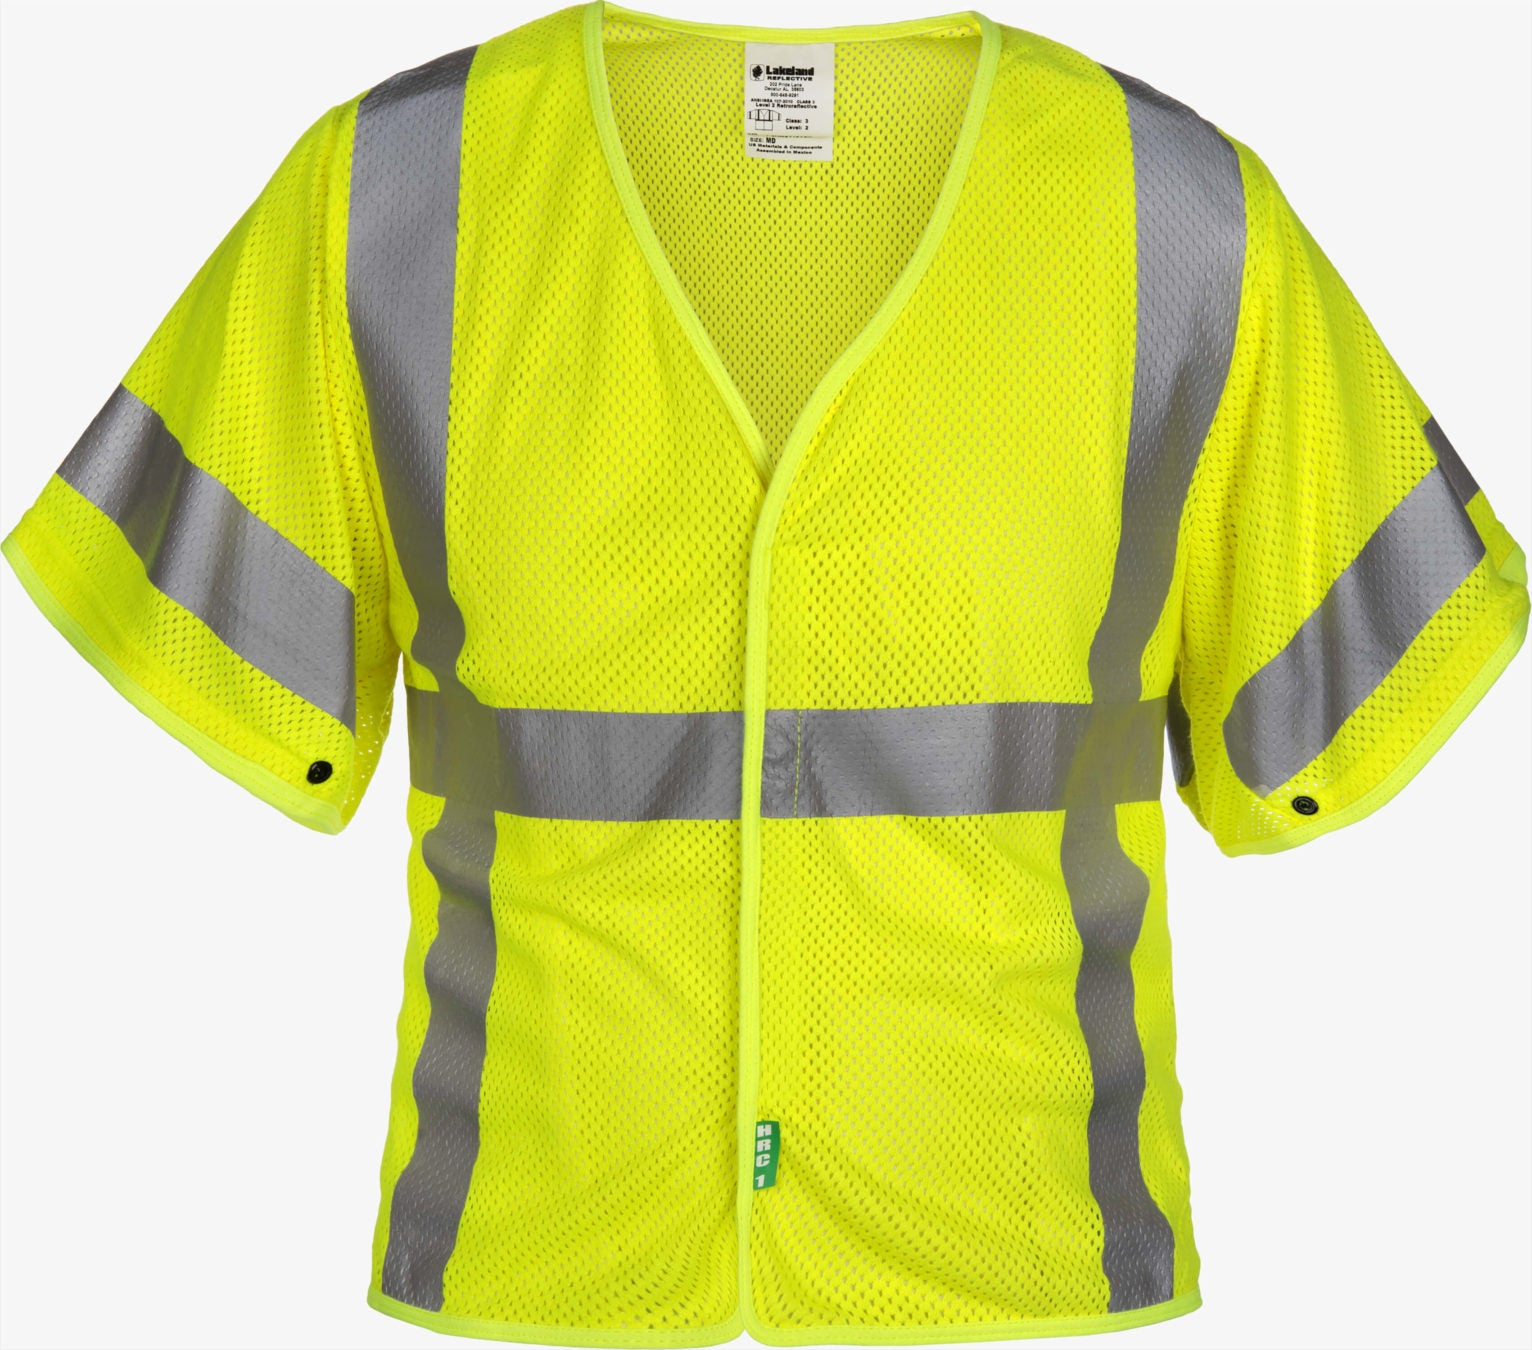 Class 3 Mesh FR Modacrylic High-Vis Sleeved Vest By Lakeland Industries